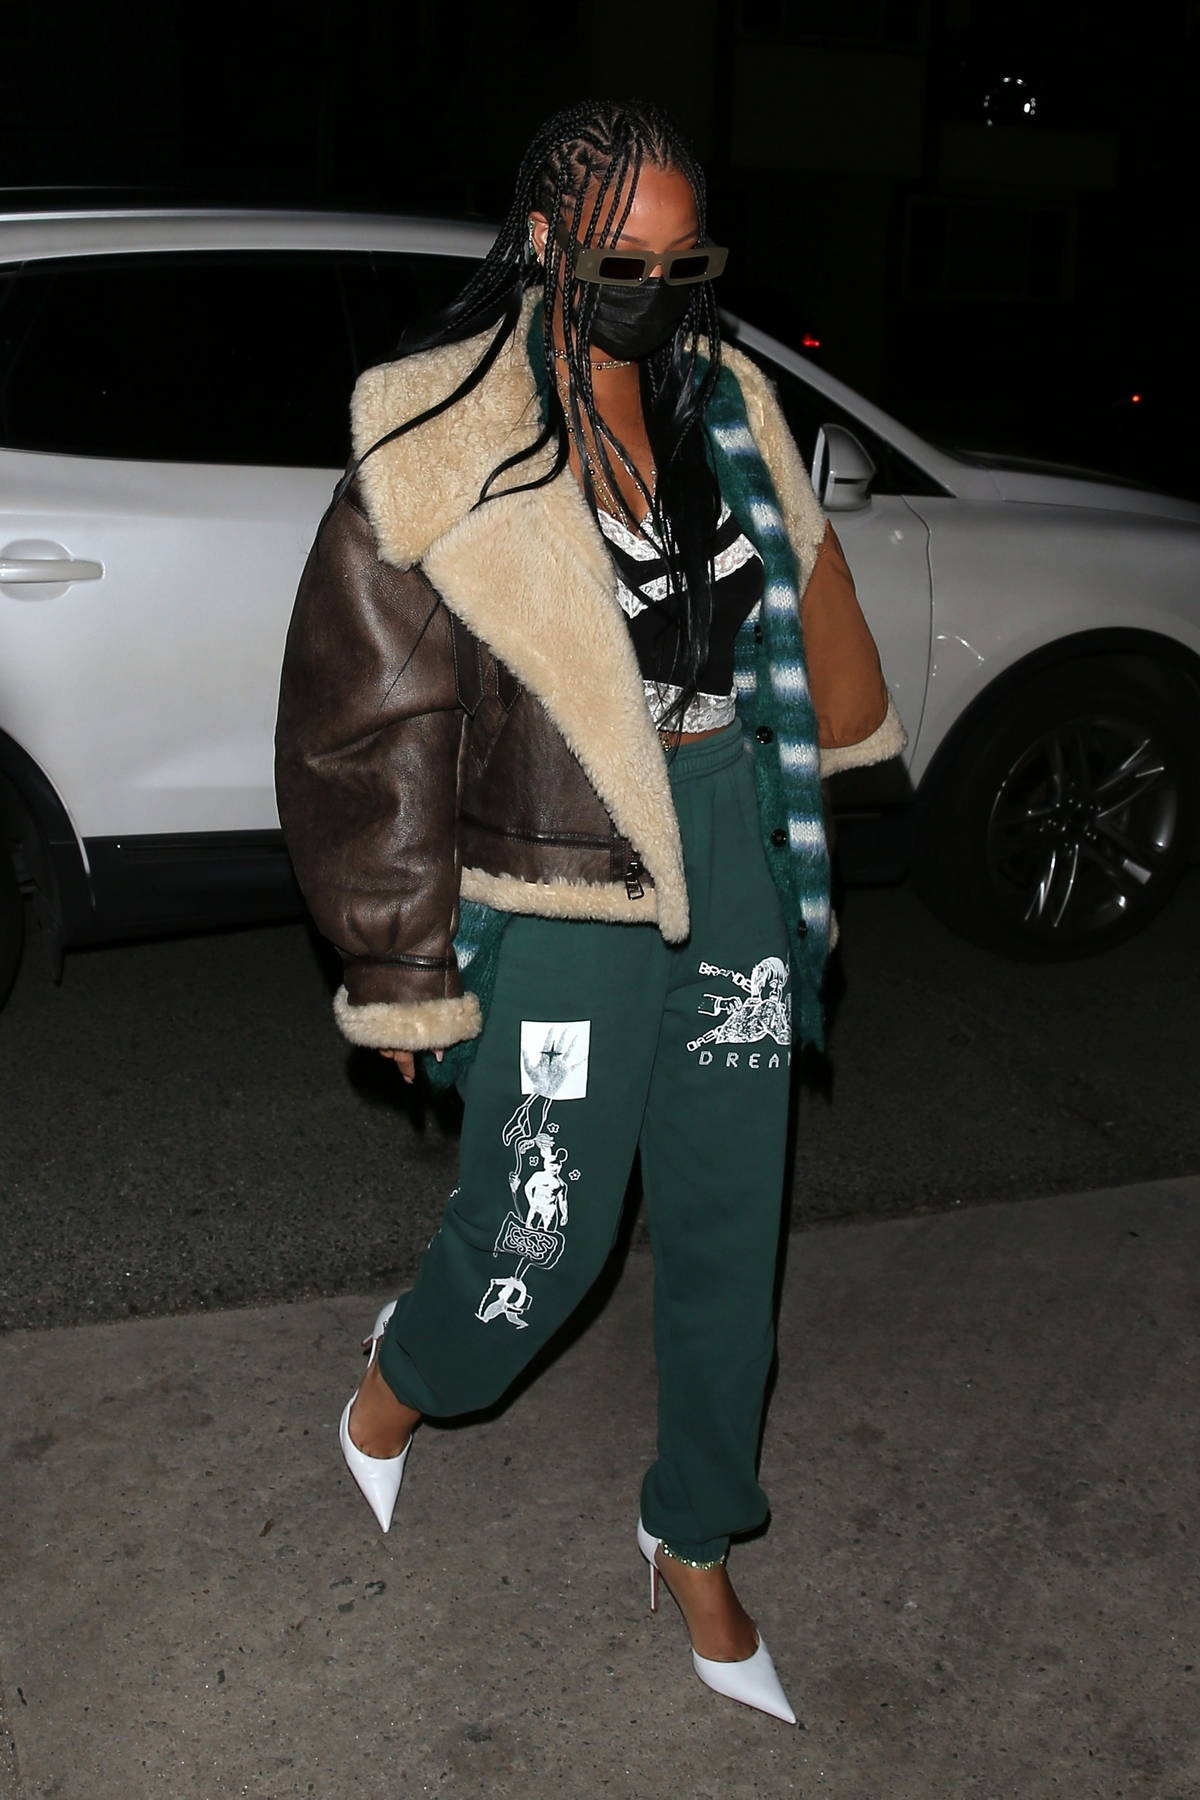 Rihanna keeps it fashionable in a green outfit as she arrives for a solo dinner at Giorgio Baldi in Santa Monica, California